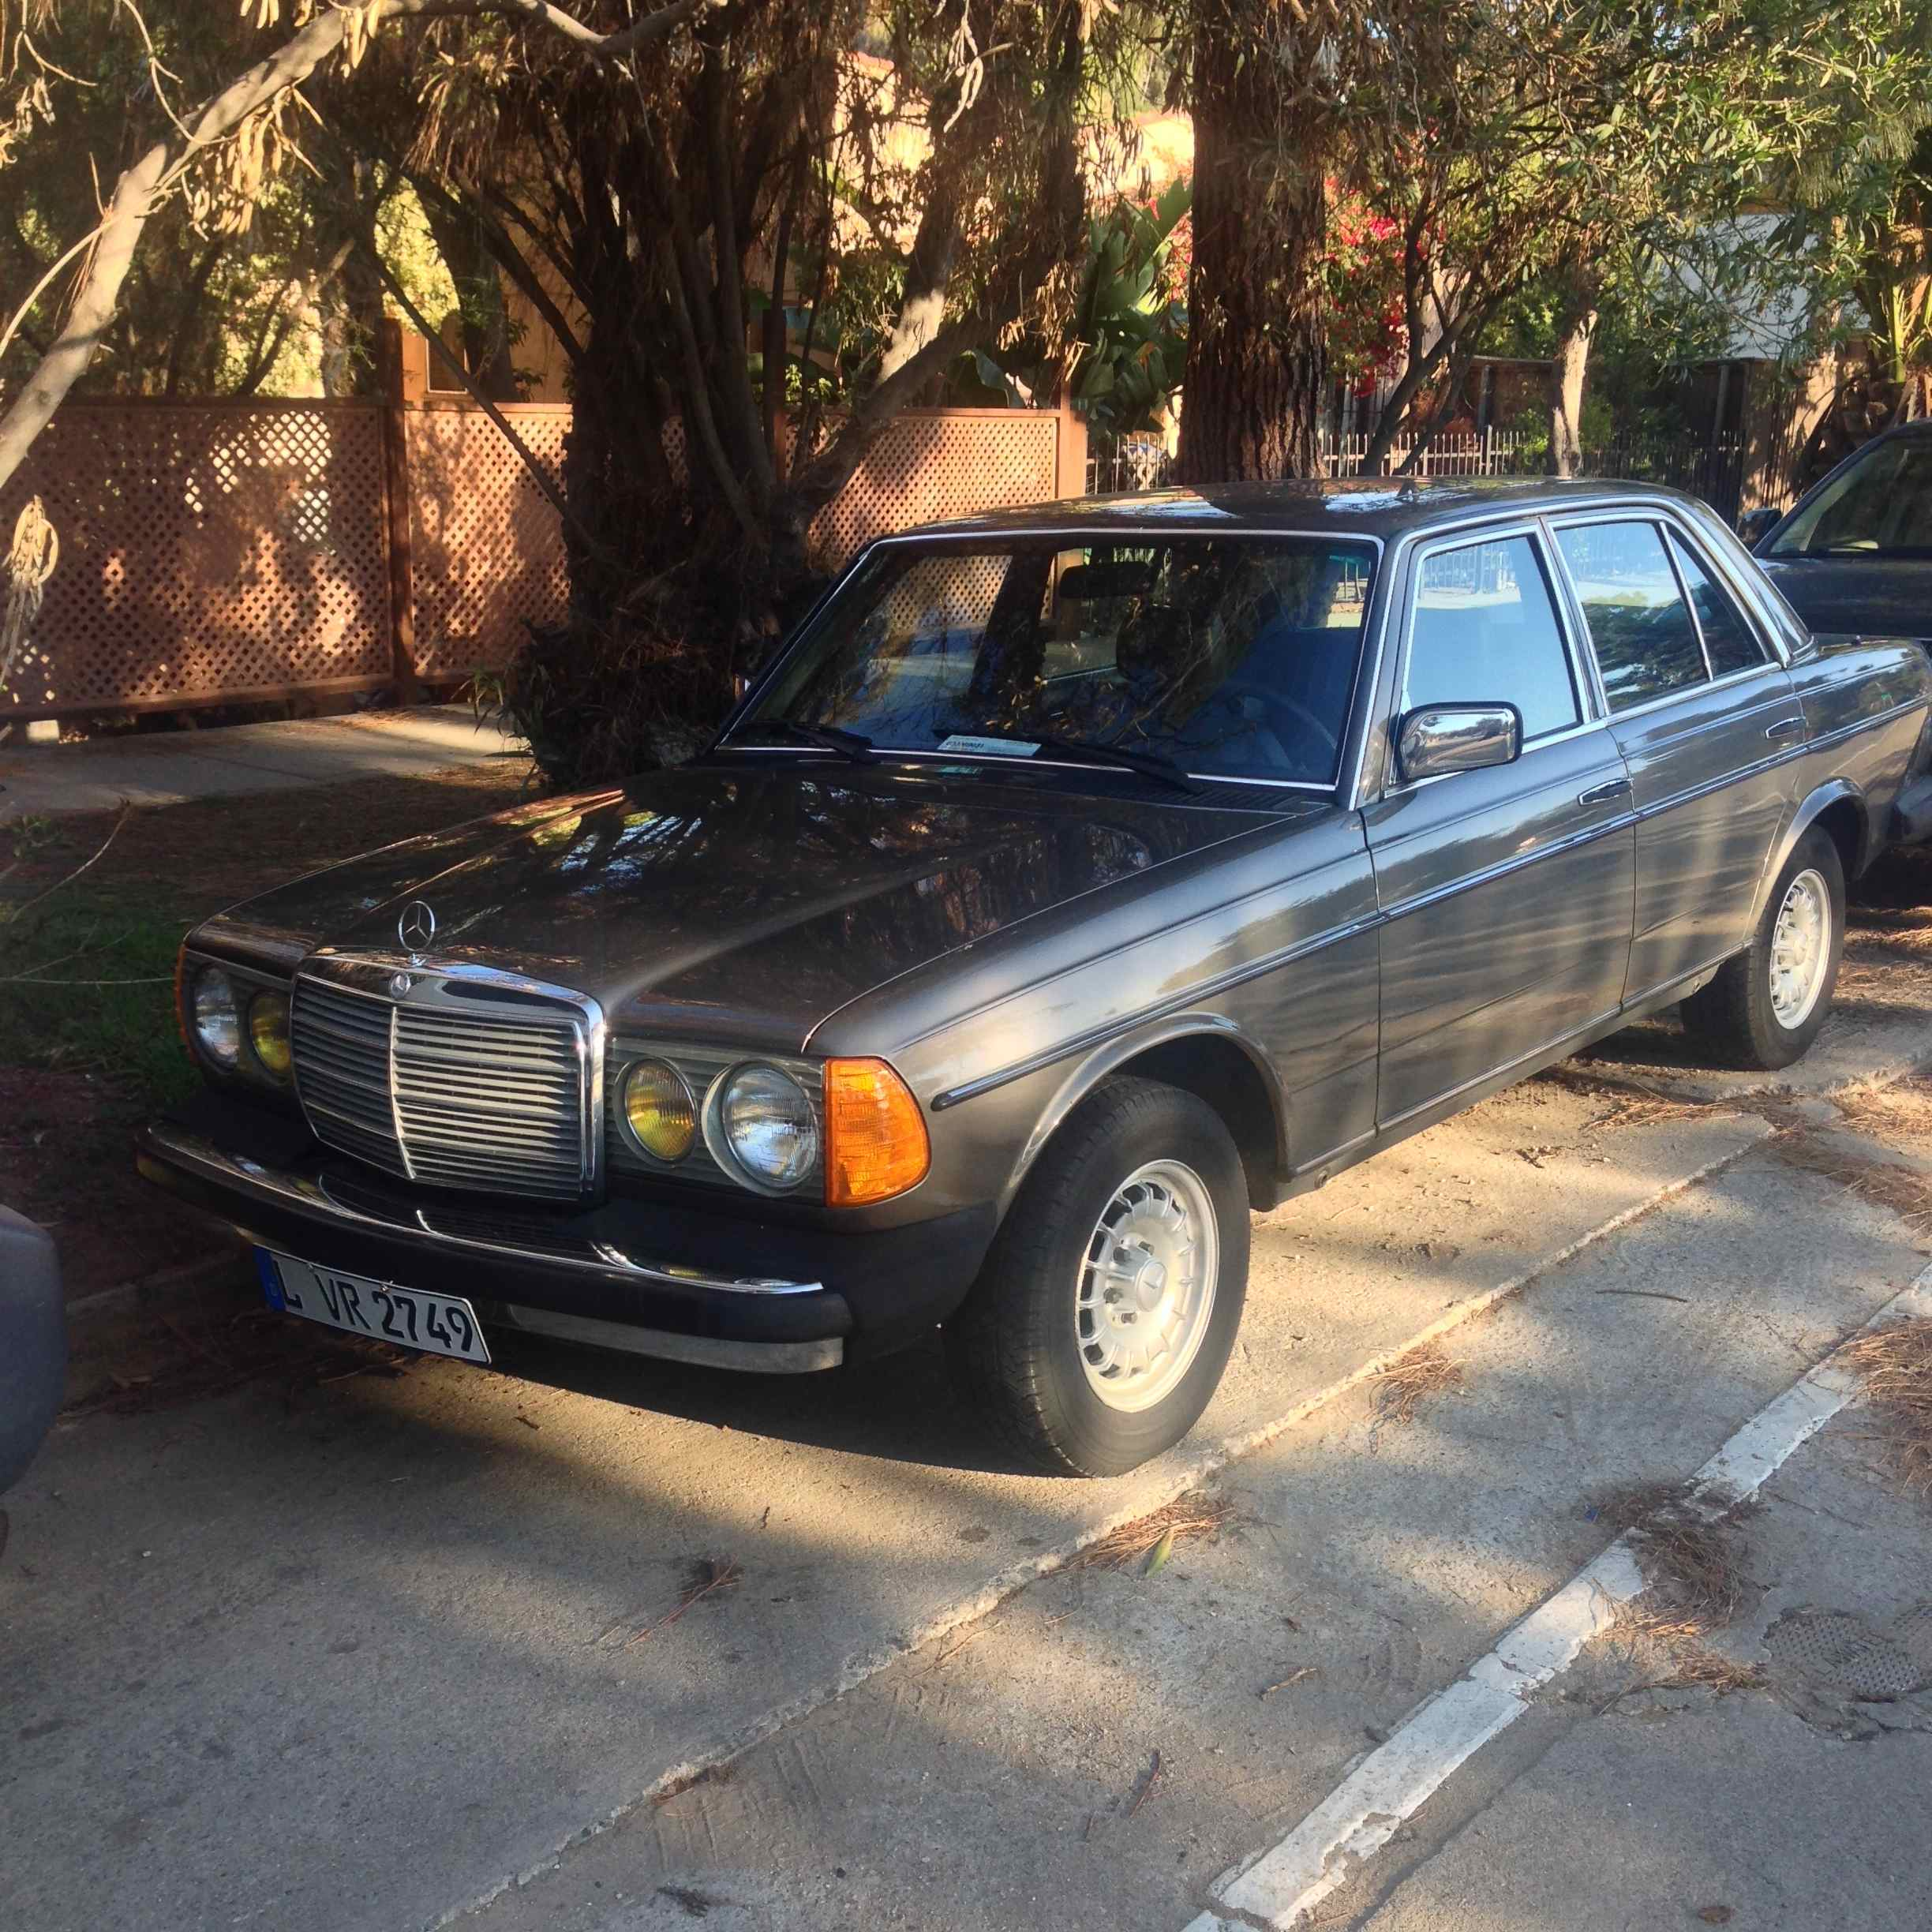 1980s Mercedes-Benz 300D on Silver Lake Blvd., and below, a pair of 300CDs of the same vintage down the street.